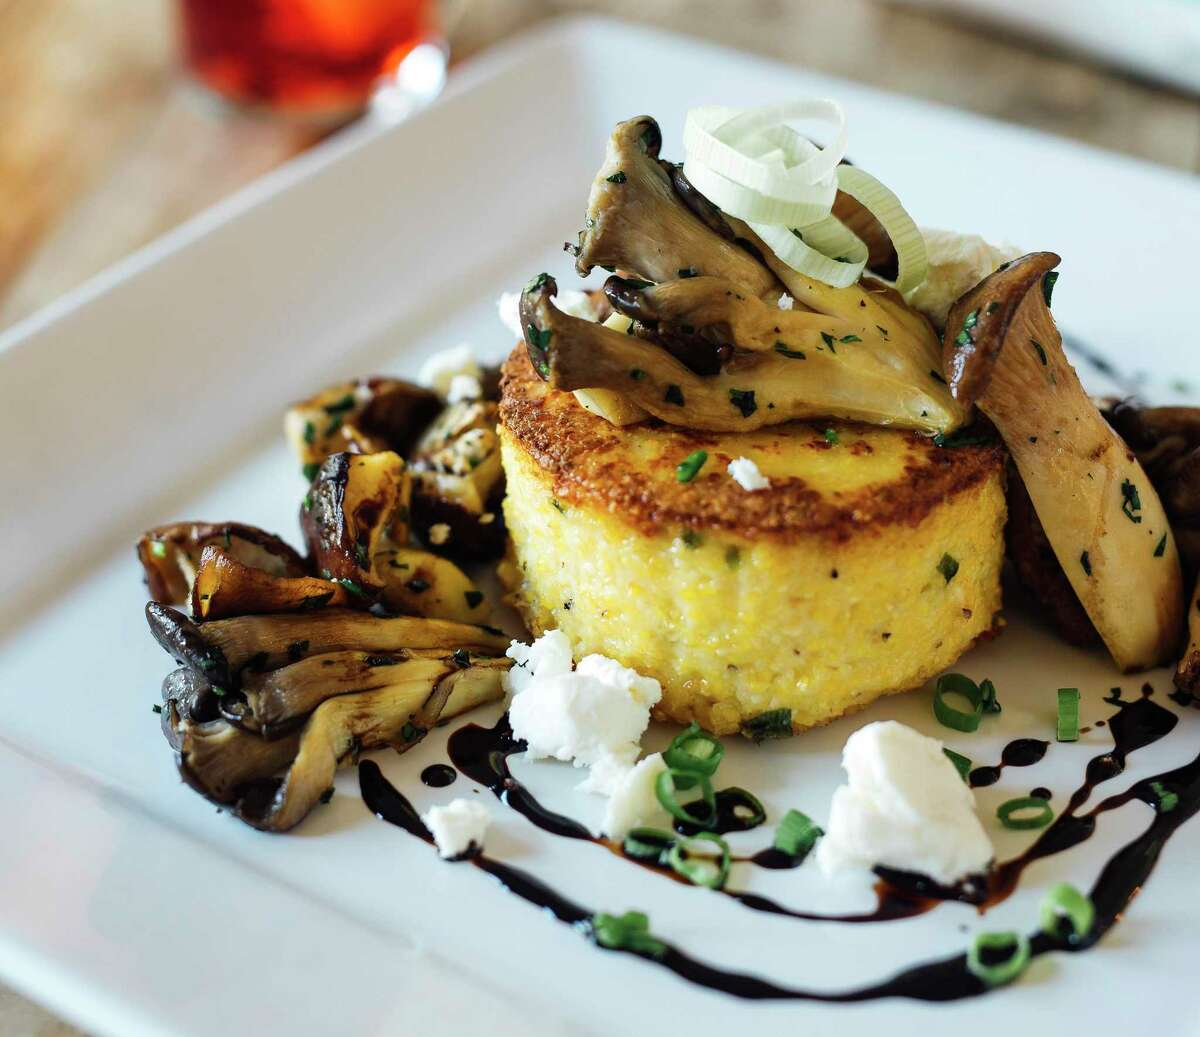 Green onion polenta cake with Texas goat cheese, wild mushrooms and balsamic reduction will be part of the menu at Bar Loretta, a new bar and restaurant concept coming to Southtown in February 2021.